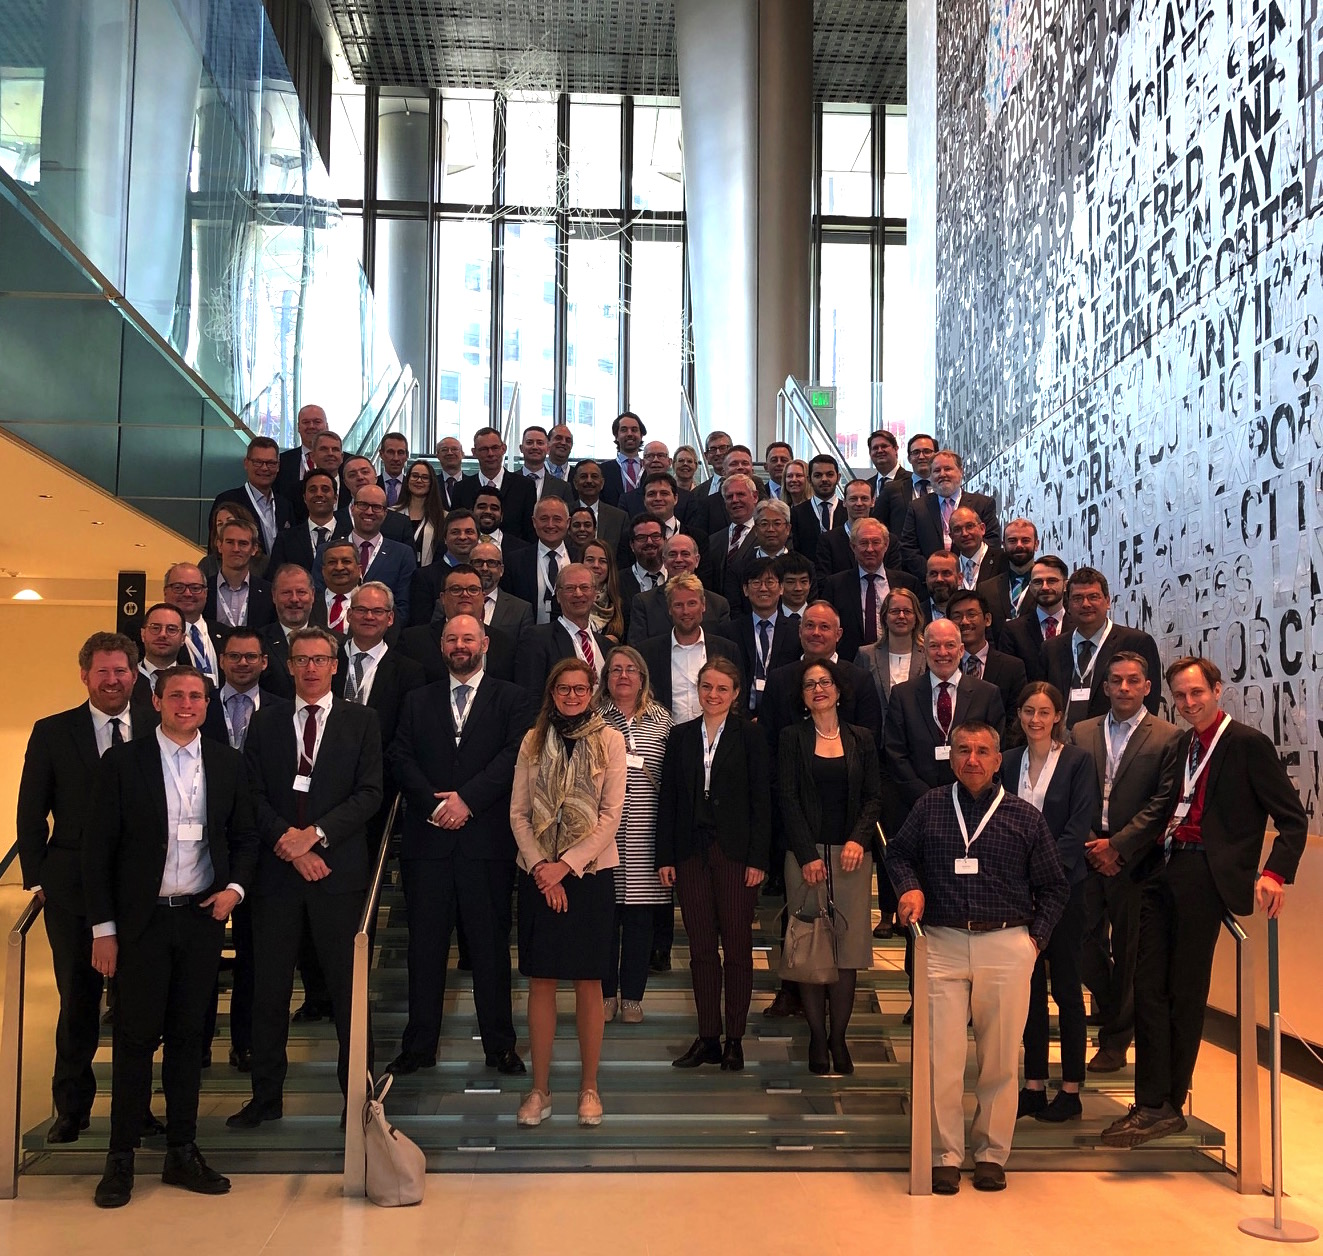 3rd Arctic Shipping Best Practice Forum, Unites States' Embassy, London 2019